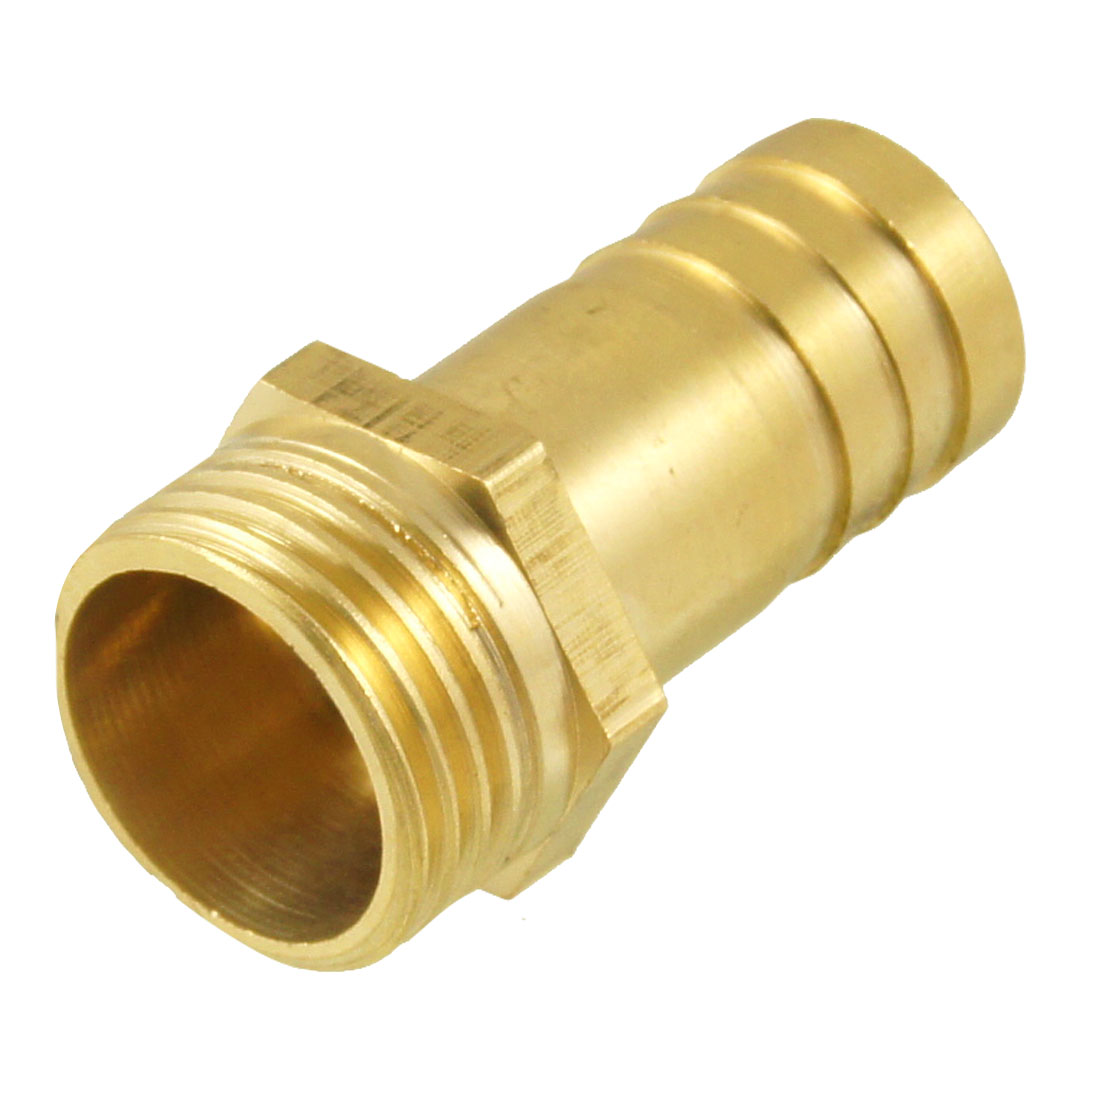 "Gold Tone Brass 16mm Fuel Gas Hose Barb 1/2"" PT Male Thread Coupling Fitting"